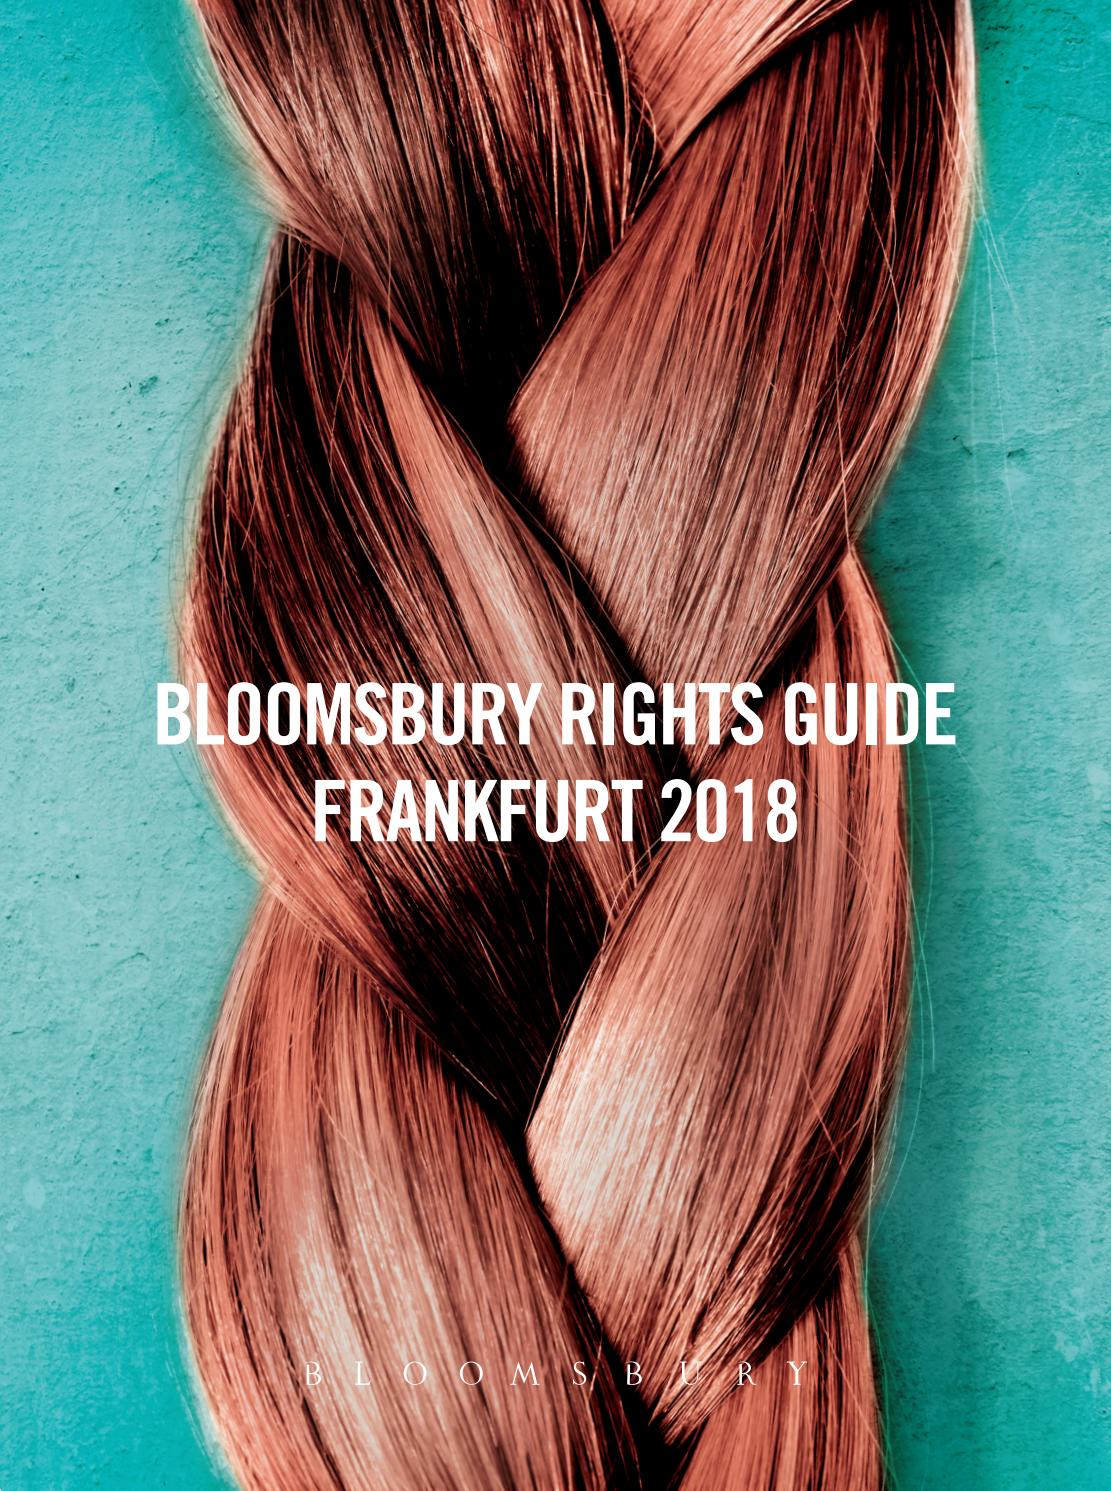 Bloomsbury Rights Guide 2018 by Bloomsbury Publishing - issuu aaee4fc9a